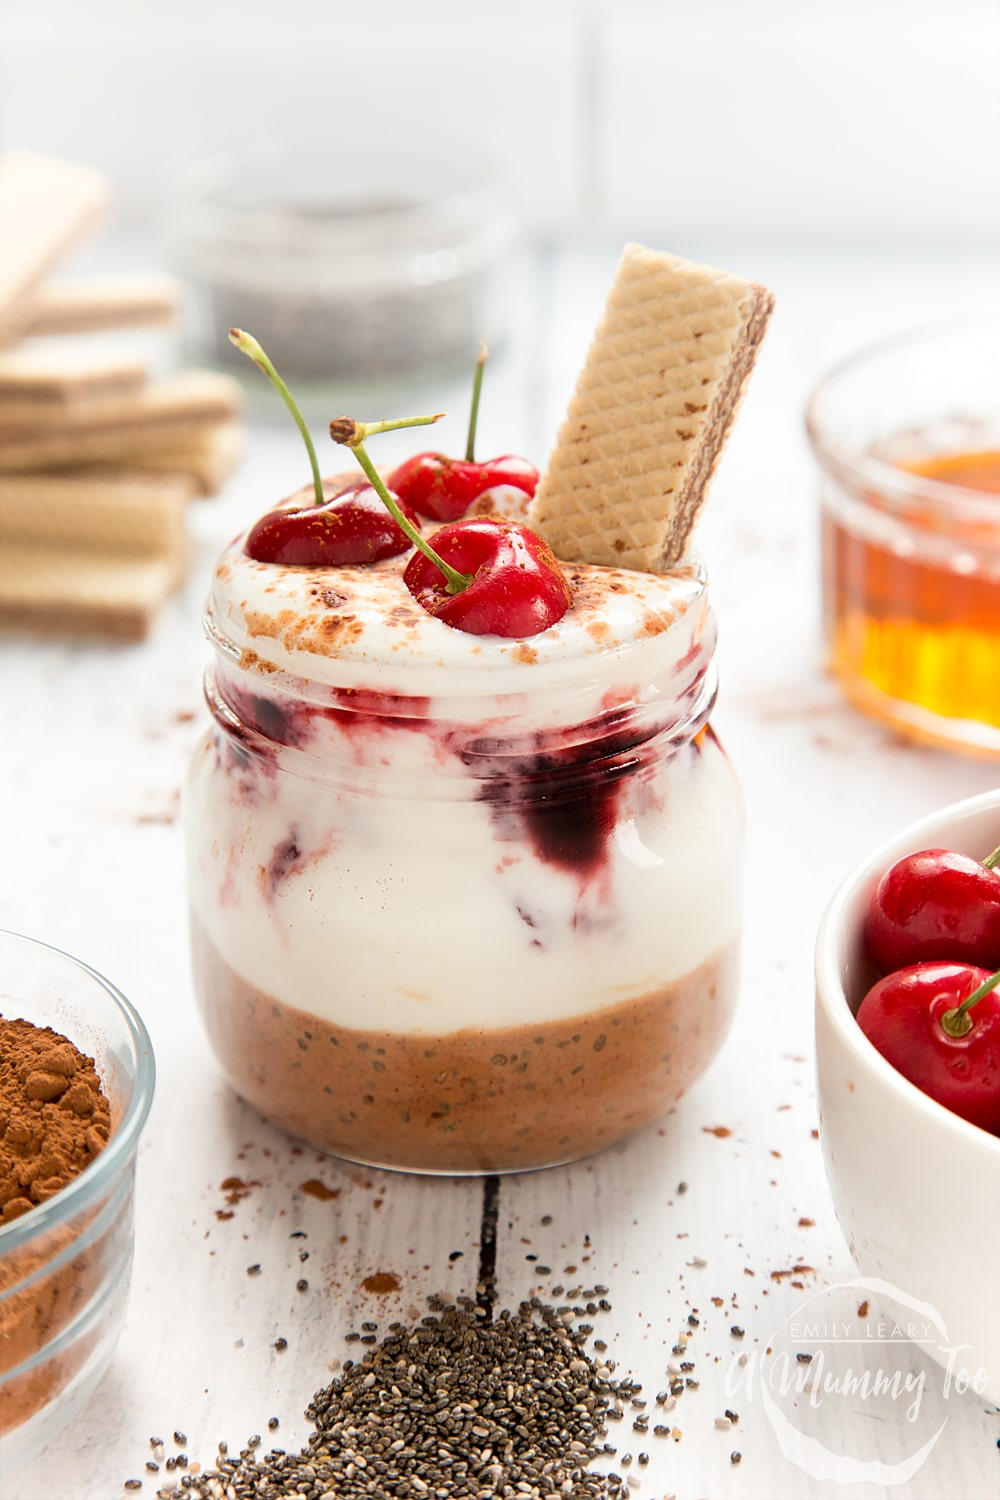 This black forest breakfast jar features layers of yogurt and cherry conserve, topped with cherries and a Loacker Napolitaner wafer